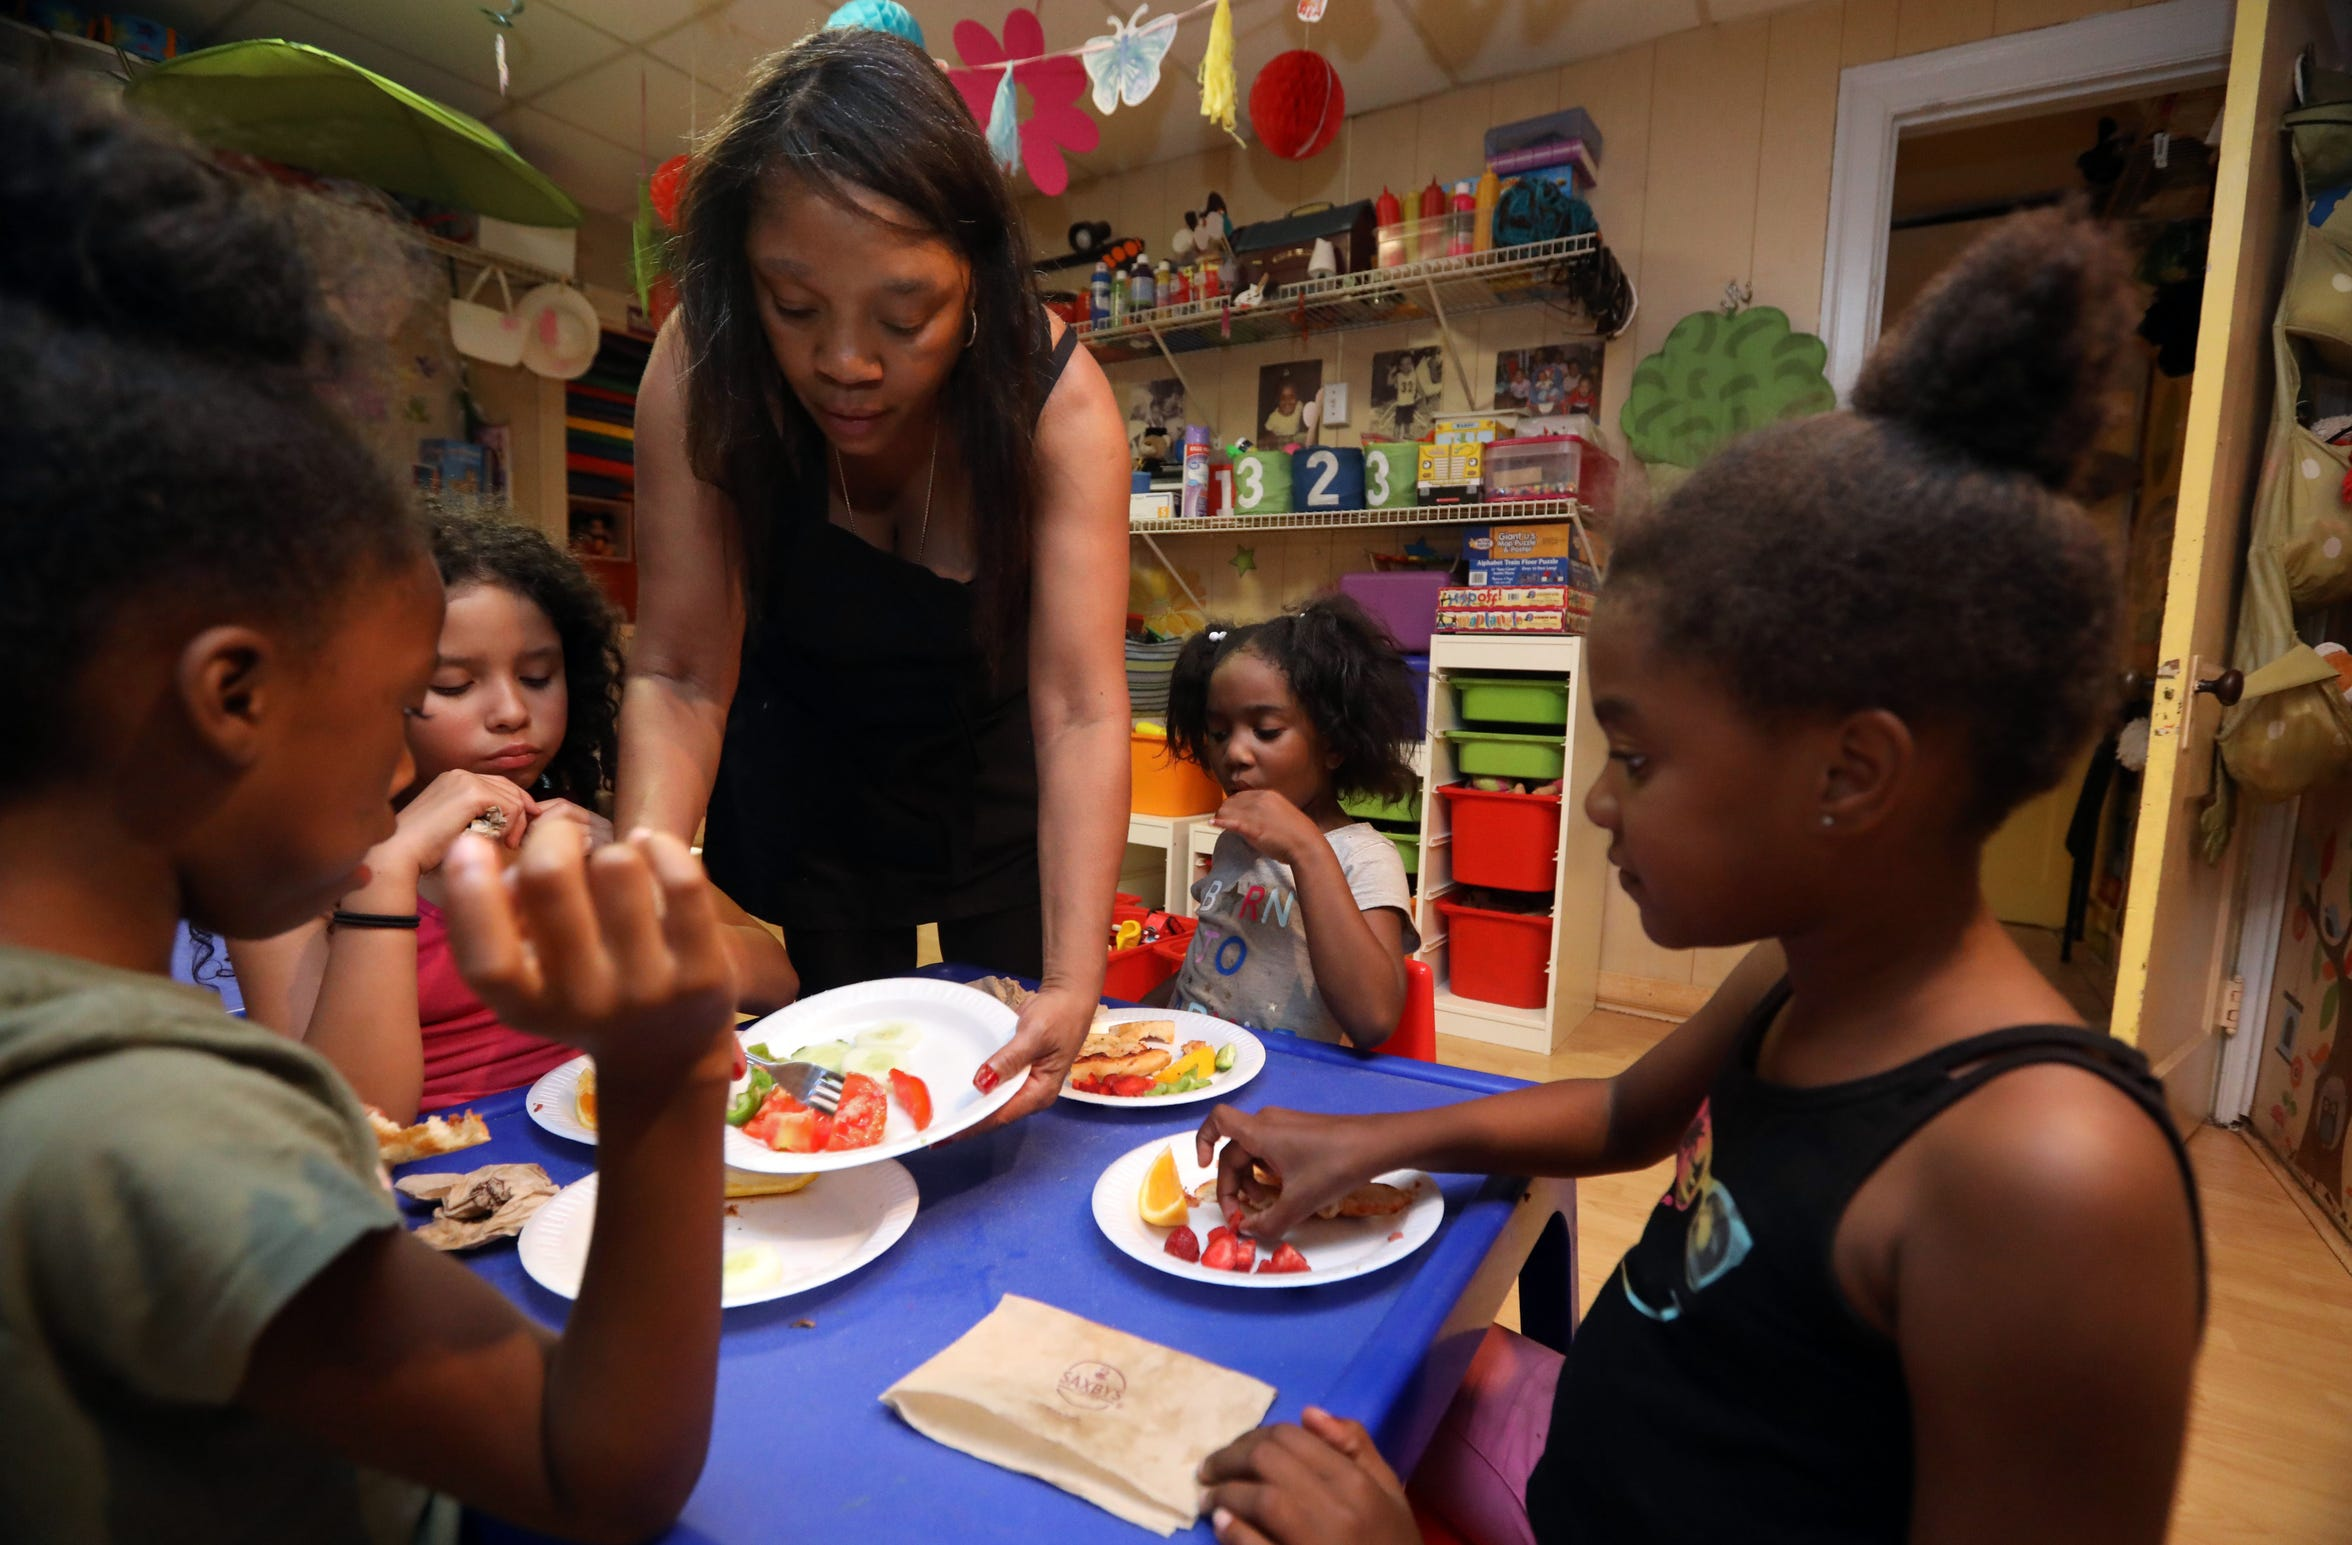 """Deloris Hogan, known as """"Nunu,"""" serves dinner at Dee's Tots Child Care in New Rochelle Aug. 15, 2019. Hogan and her husband Patrick run the day care. They also offer late and overnight care for children whose parents work late hours."""